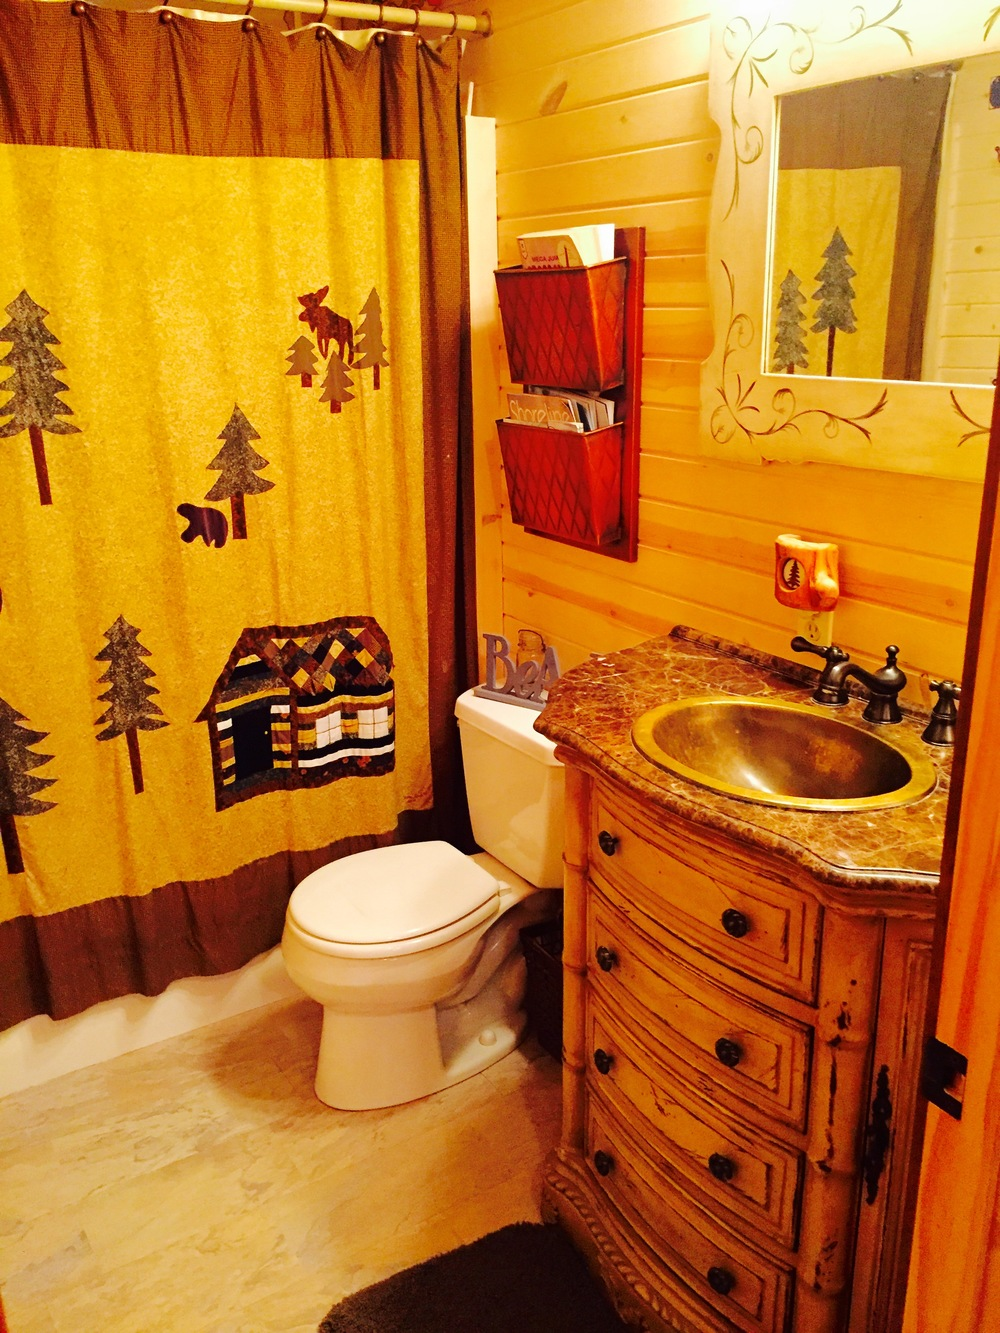 Pentwater Michigan Vacation Rental Beautiful Bathroom.jpg